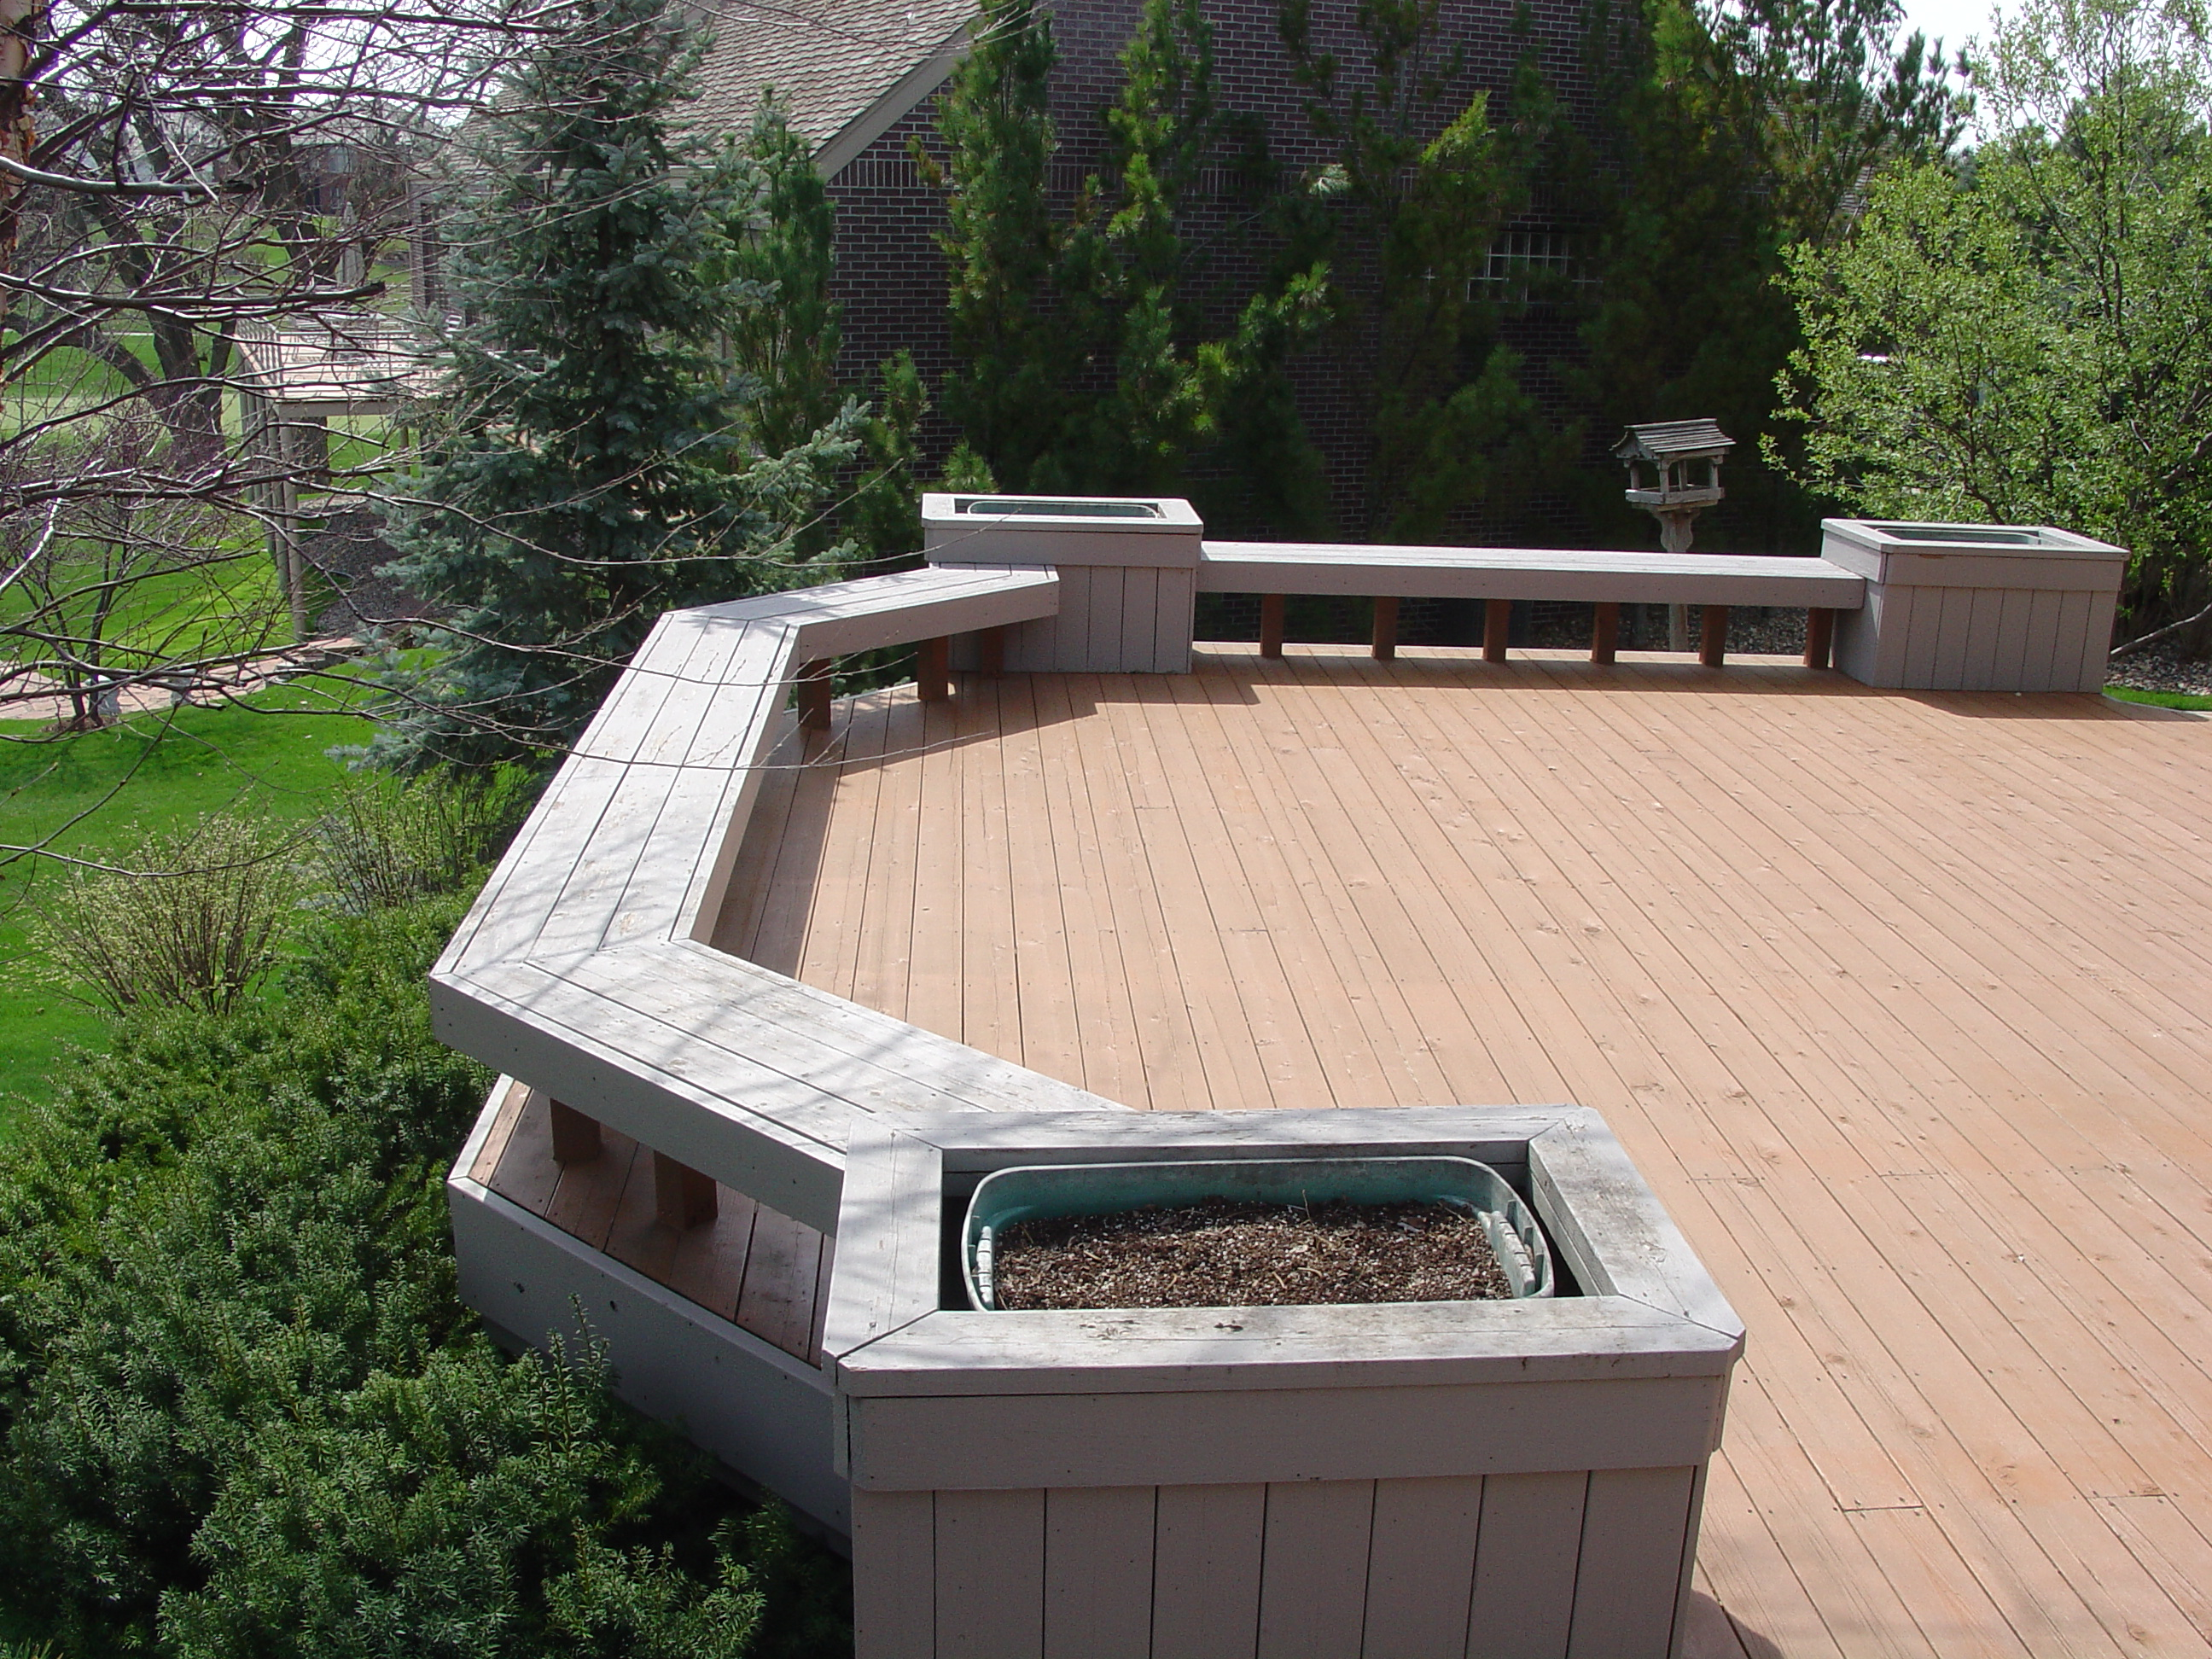 Mike Jansen Custom Cedar Decks - DECK BUILDING SERVICES